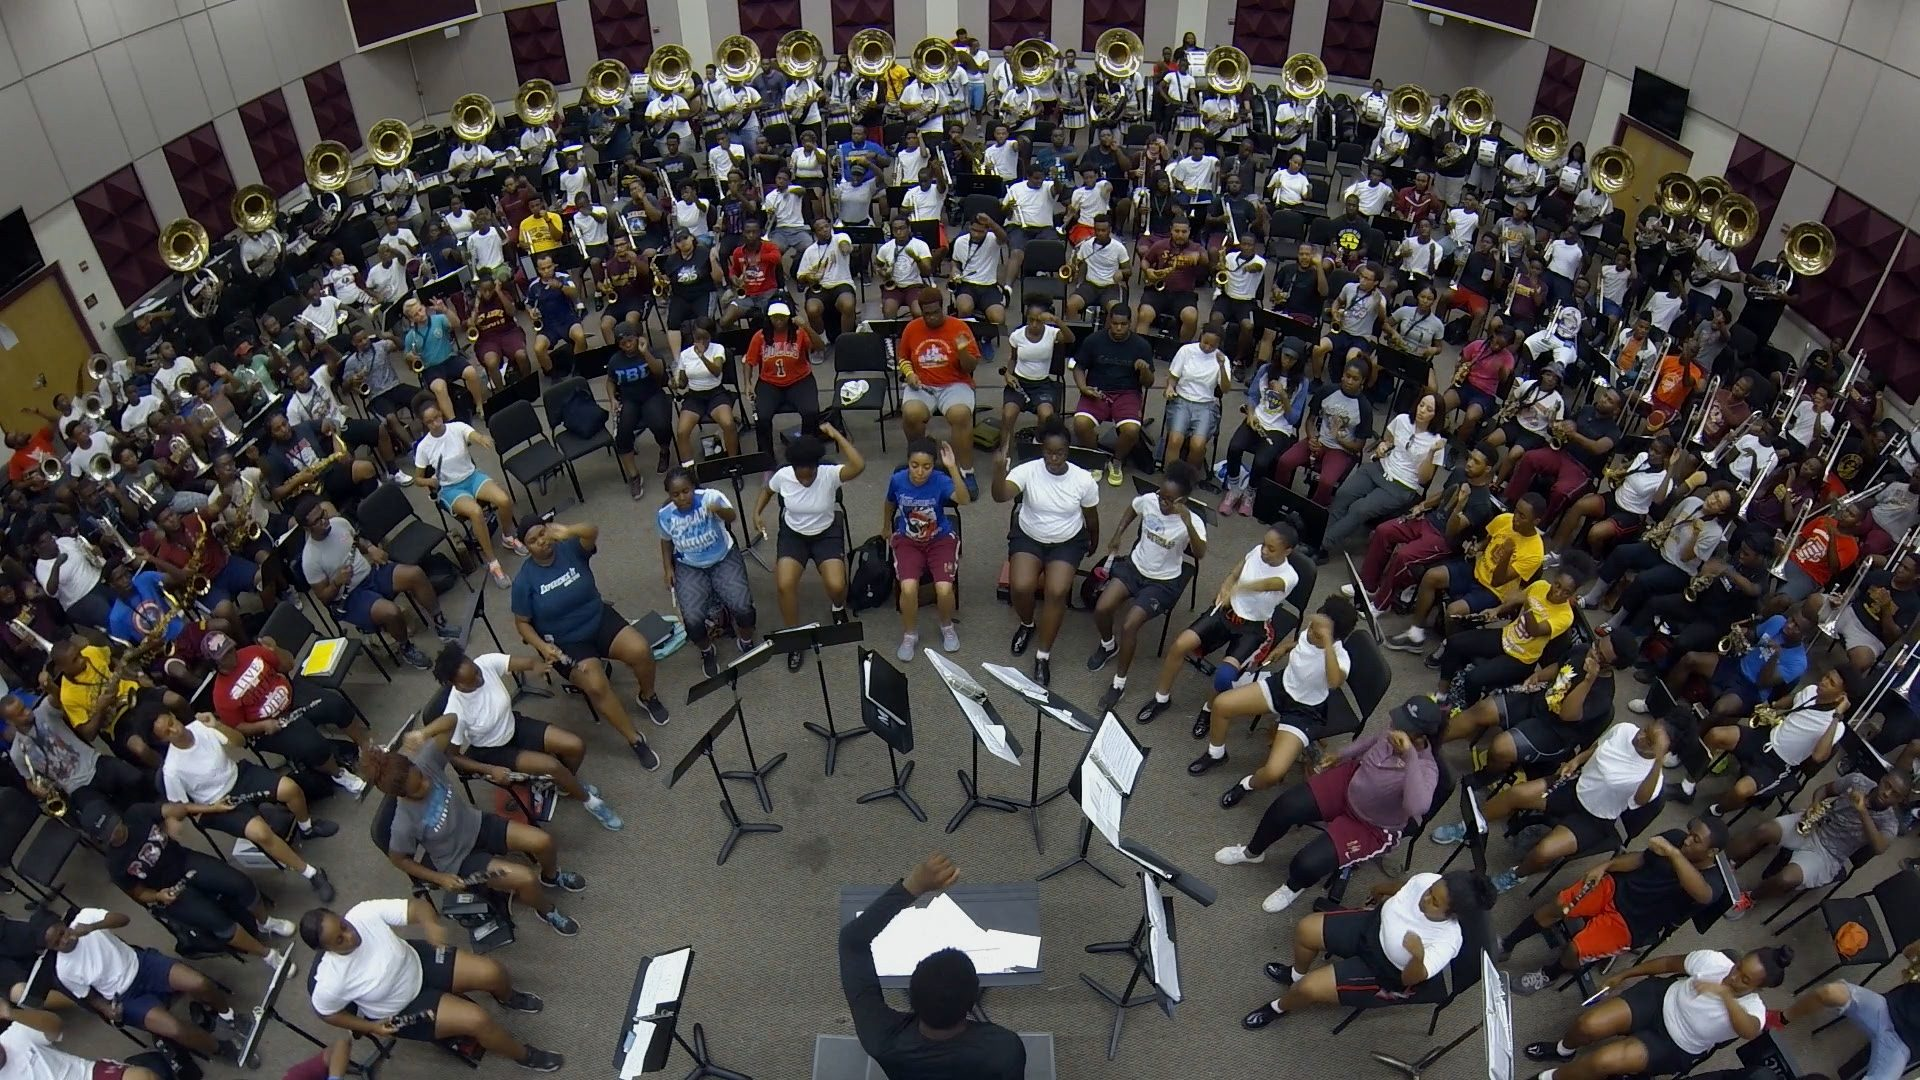 Band Practice, Rehearsal, Before Queen City Battle Of The Bands, Bethune-Cookman University, BCU, Marching Wildcats, Marching Orders, Stage 13 Original, stage13network